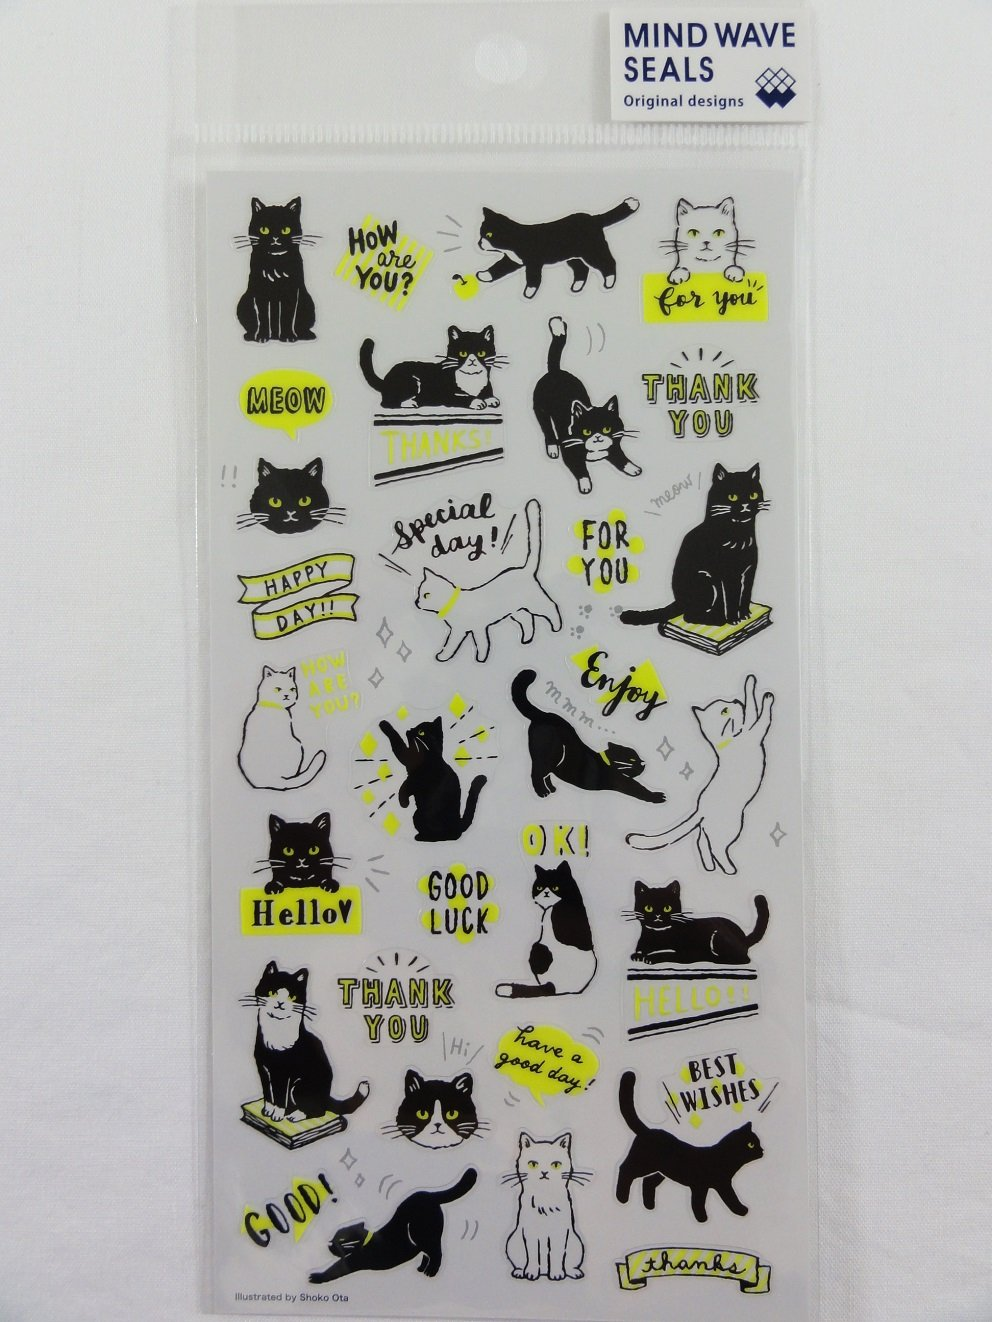 Cute Kawaii Mind Wave Fun Naughty Cat Sticker Sheet - for Journal Planner Craft Scrapbook Notebook Organizer